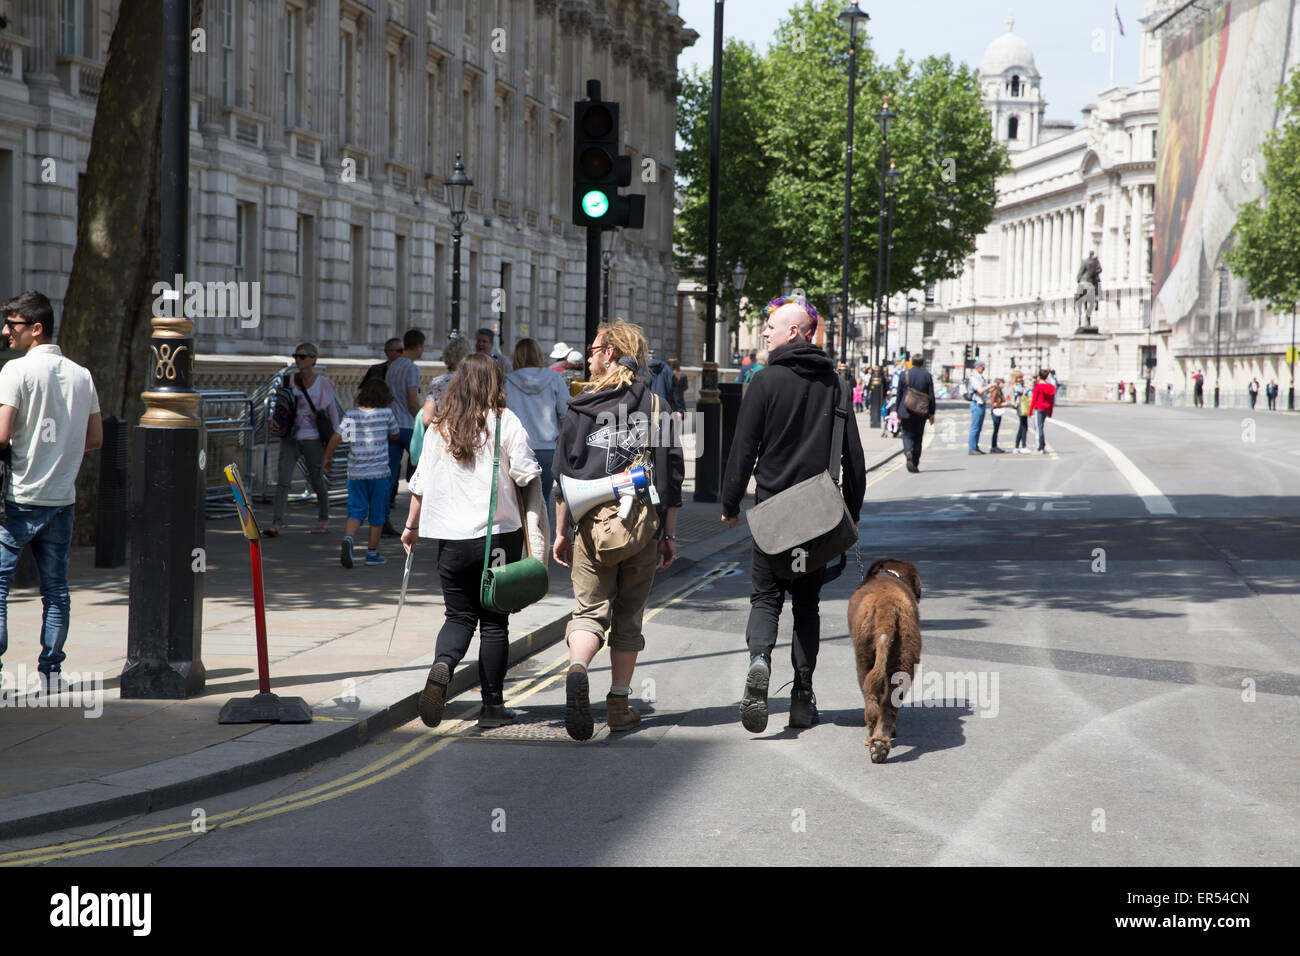 London,UK,27th May 2015,Visitors walk up Whitehall with a loud hailer in Londo Credit: Keith Larby/Alamy Live News Stock Photo